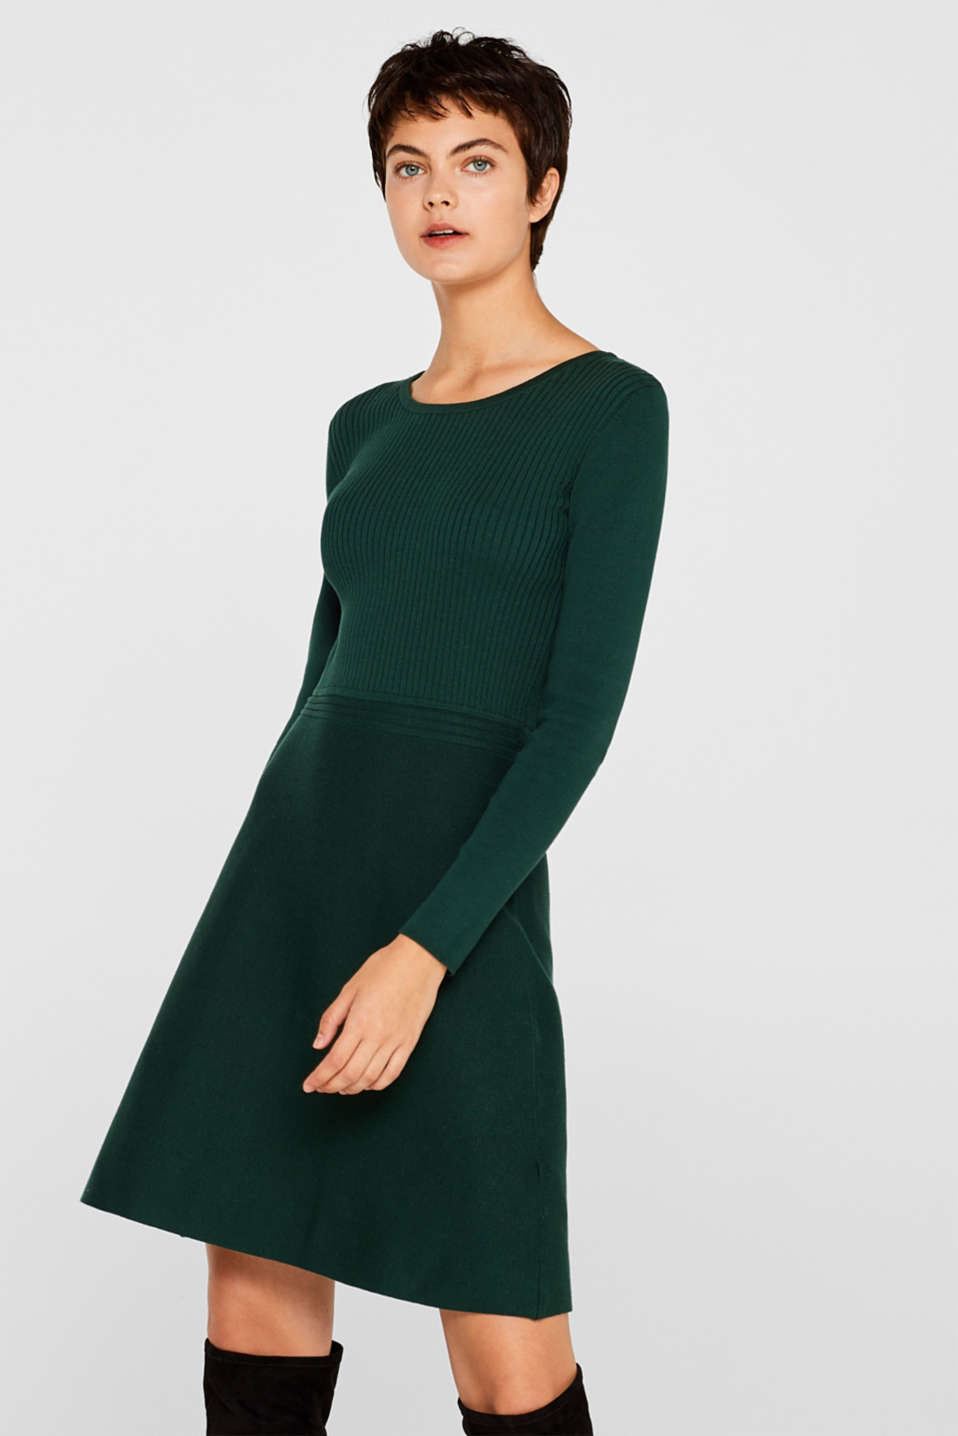 edc - Knit dress with a ribbed texture